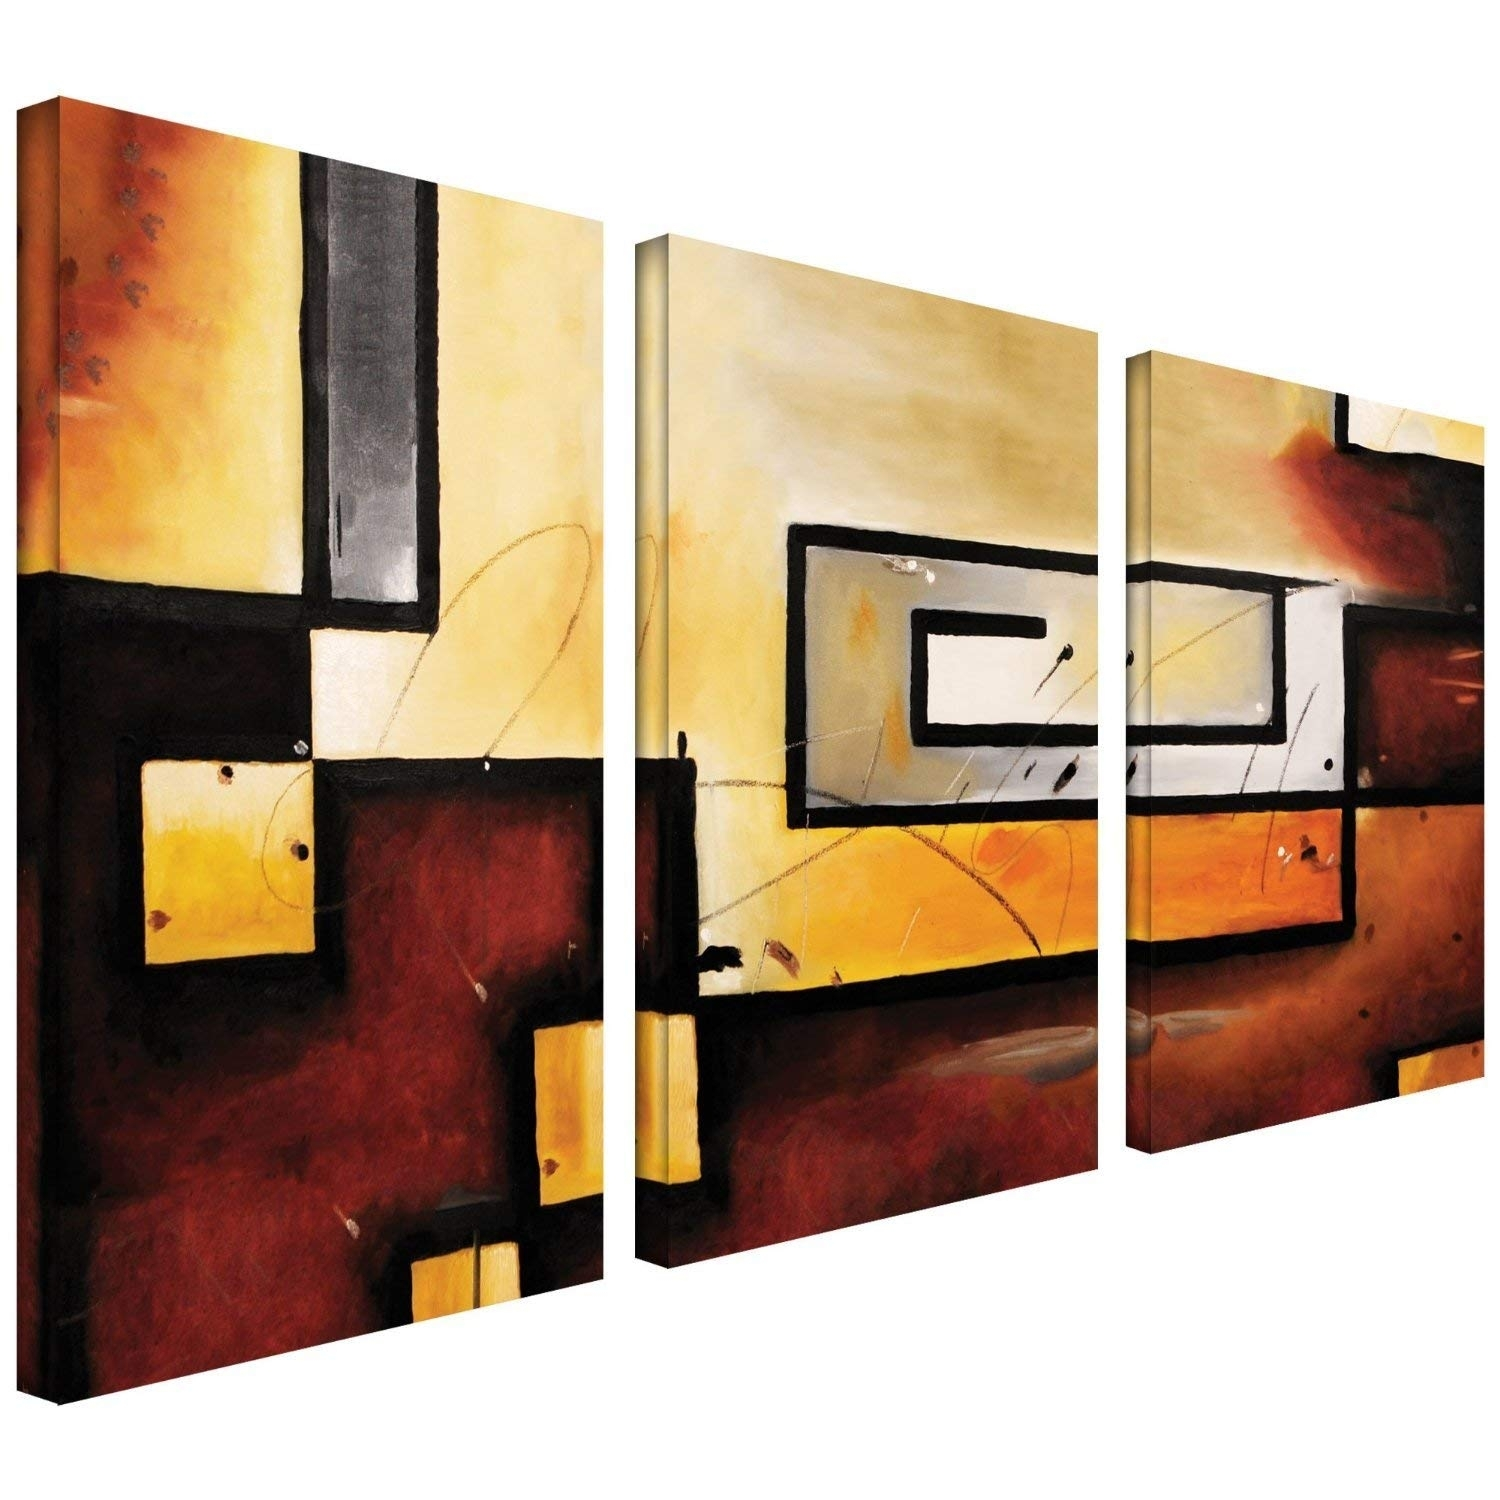 Amazon: Art Wall 3-Piece Abstract Modern Gallery Wrapped Canvas throughout Modern Wall Art (Image 3 of 20)